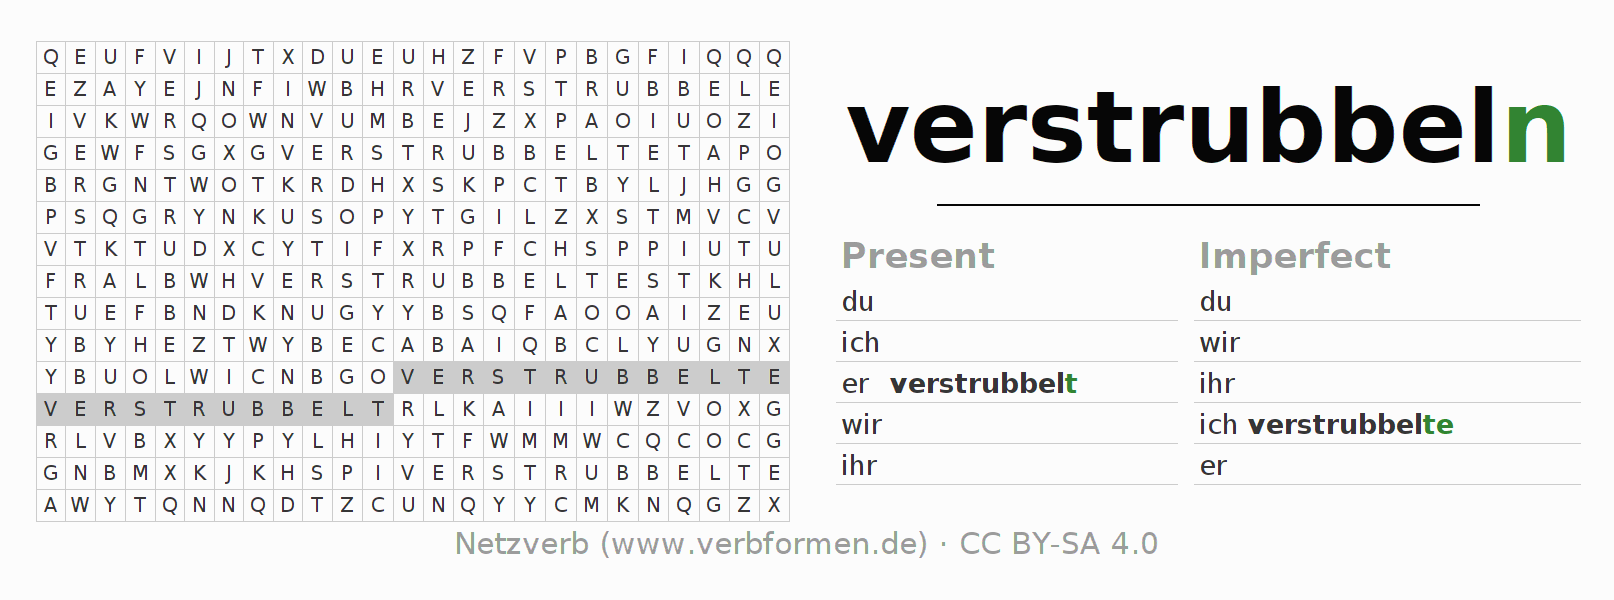 Word search puzzle for the conjugation of the verb verstrubbeln